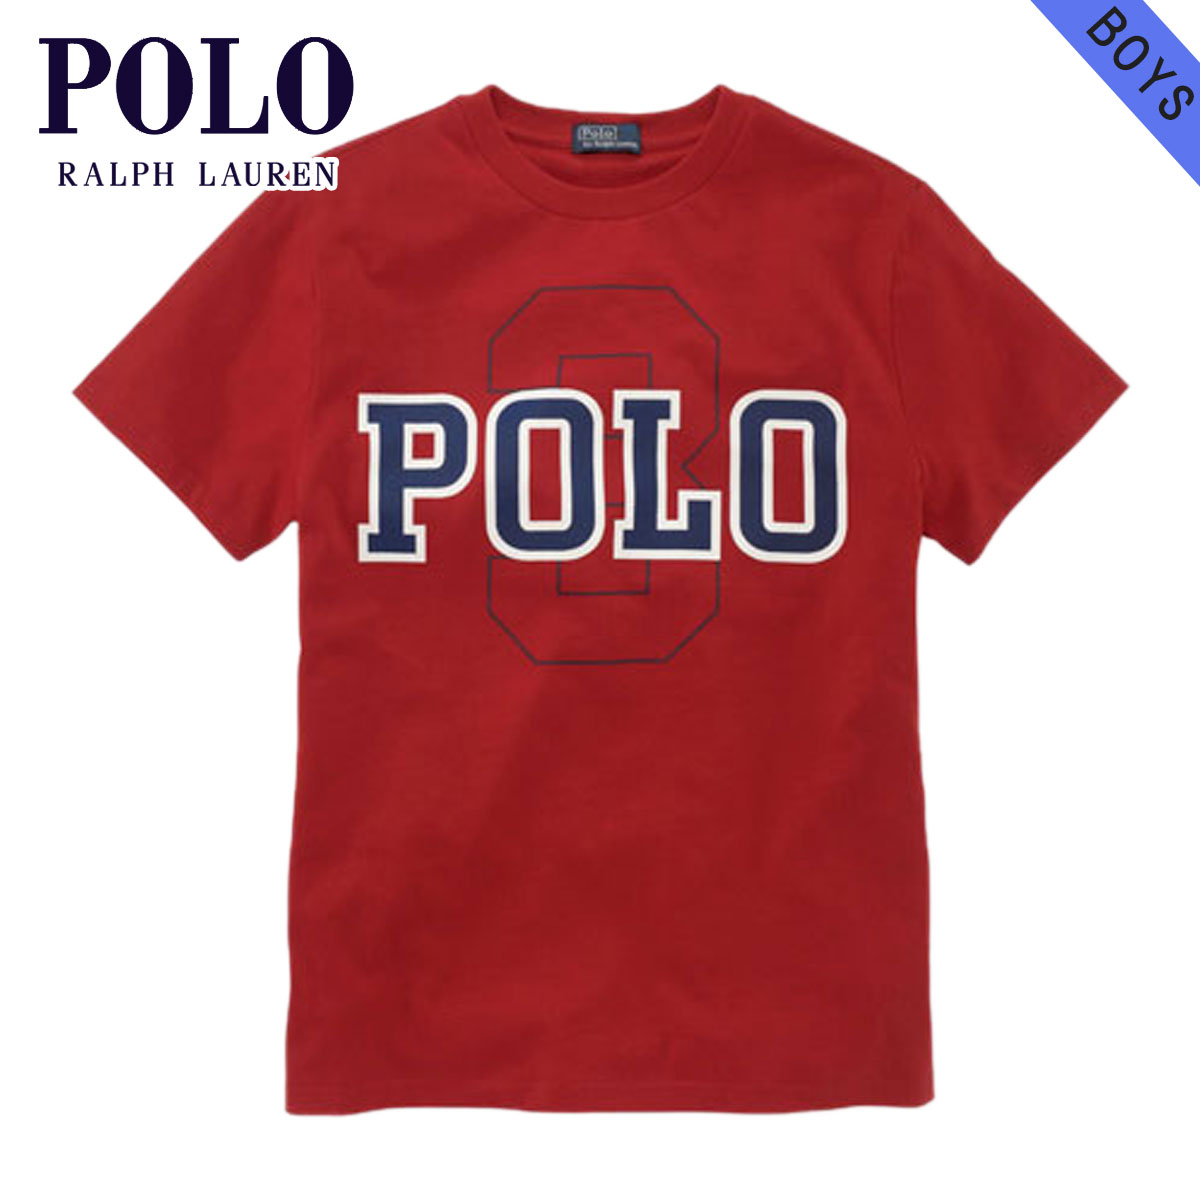 【20%OFFセール 3/24 20:00〜3/29 1:59】 ポロ ラルフローレン キッズ POLO RALPH LAUREN CHILDREN 正規品 子供服 ボーイズ 半袖Tシャツ Short-Sleeved Polo Graphic Tee #19150646 RED